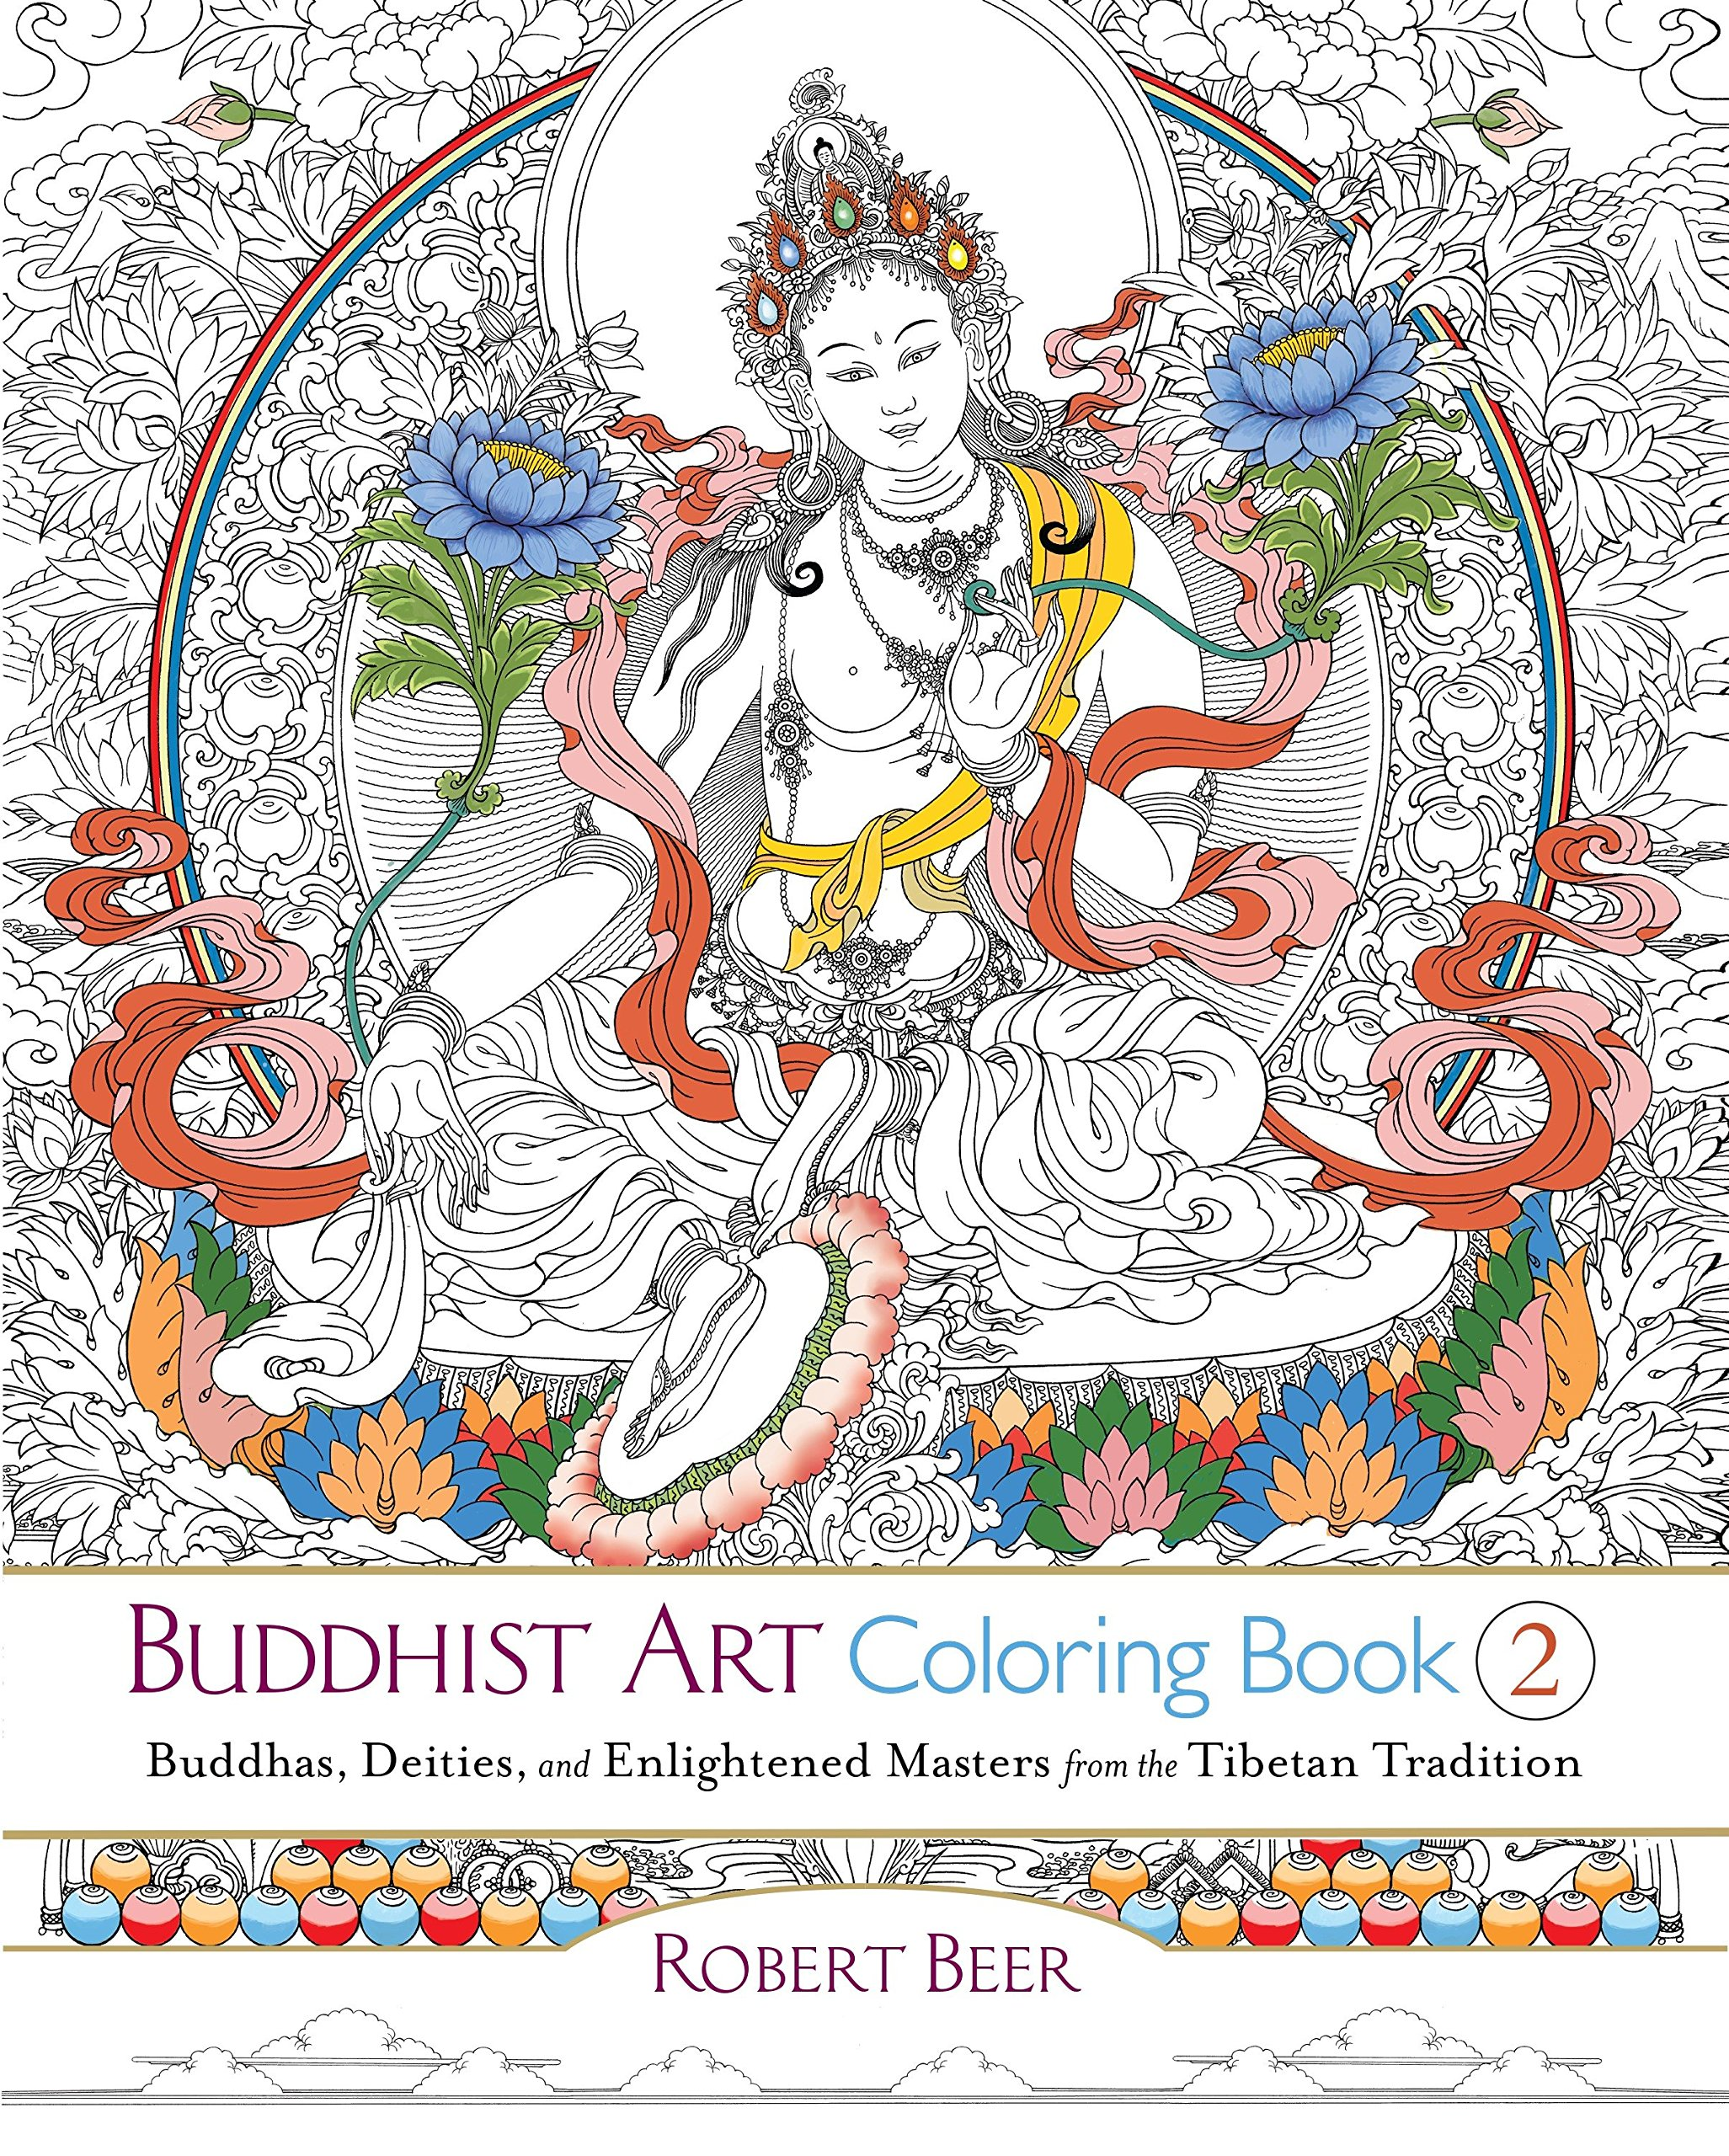 Buddhist Art Coloring Book 2: Buddhas, Deities, and Enlightened ...